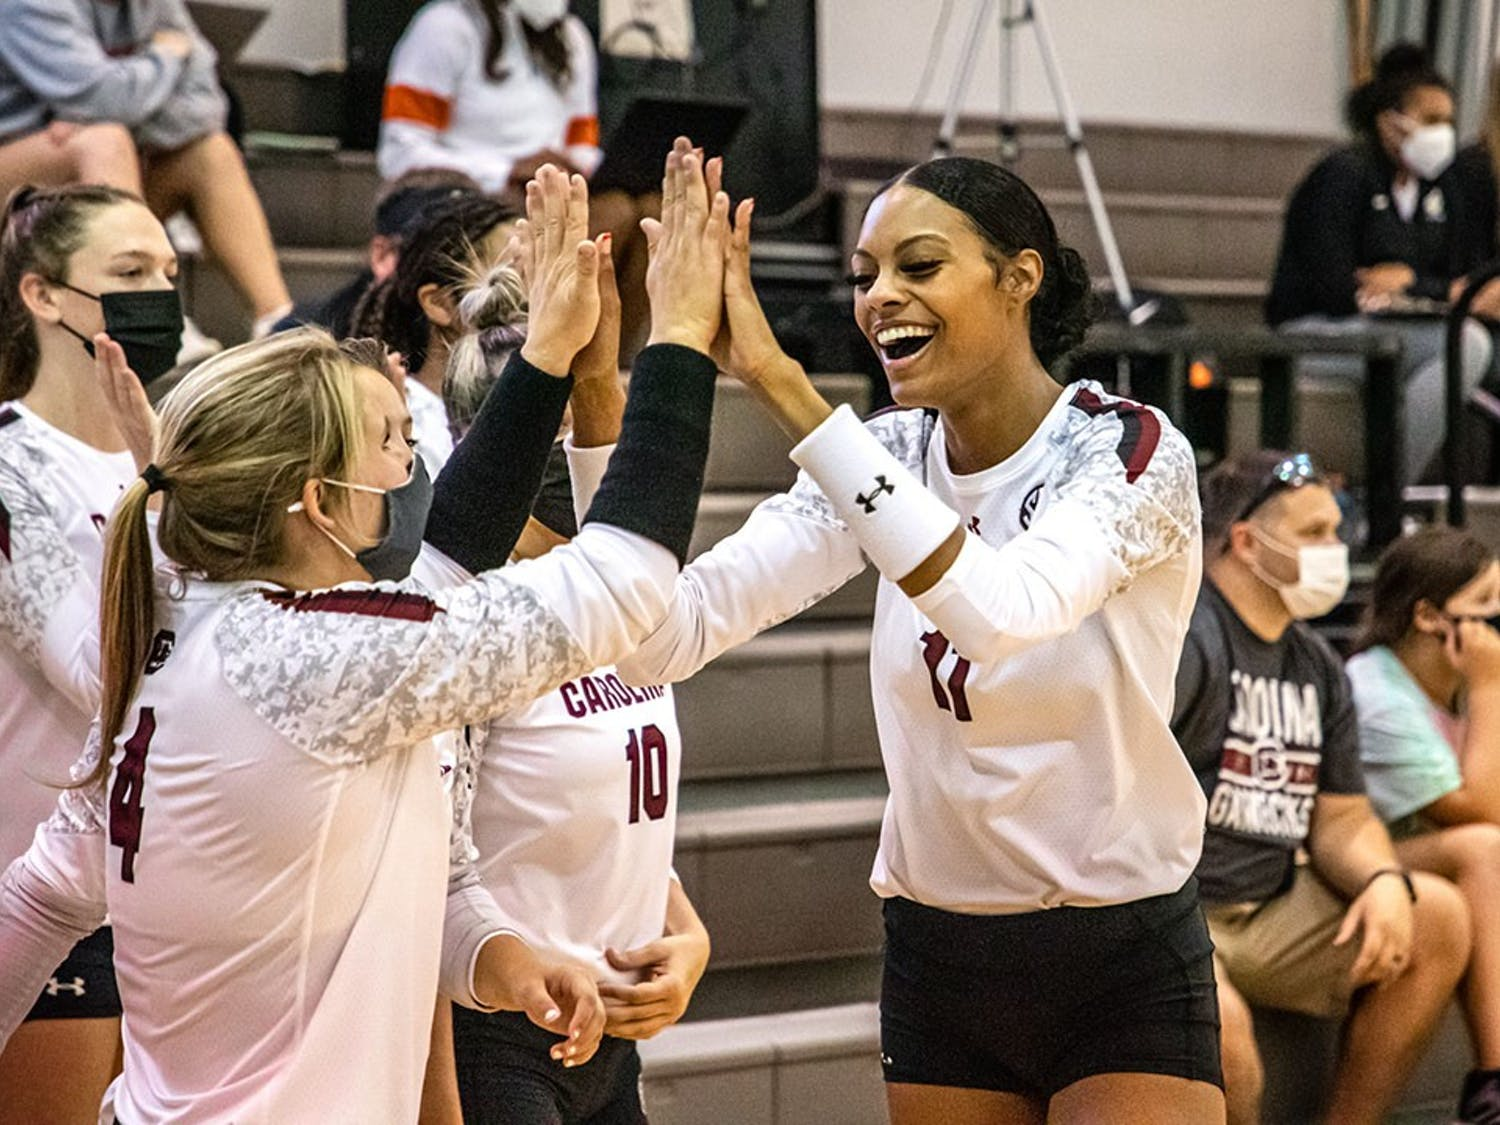 Senior Lauren Bowers high-fives senior Mikayla Robinson after Robinson scores a point. The Gamecocks defeated the Winthrop Eagles in three straight sets.